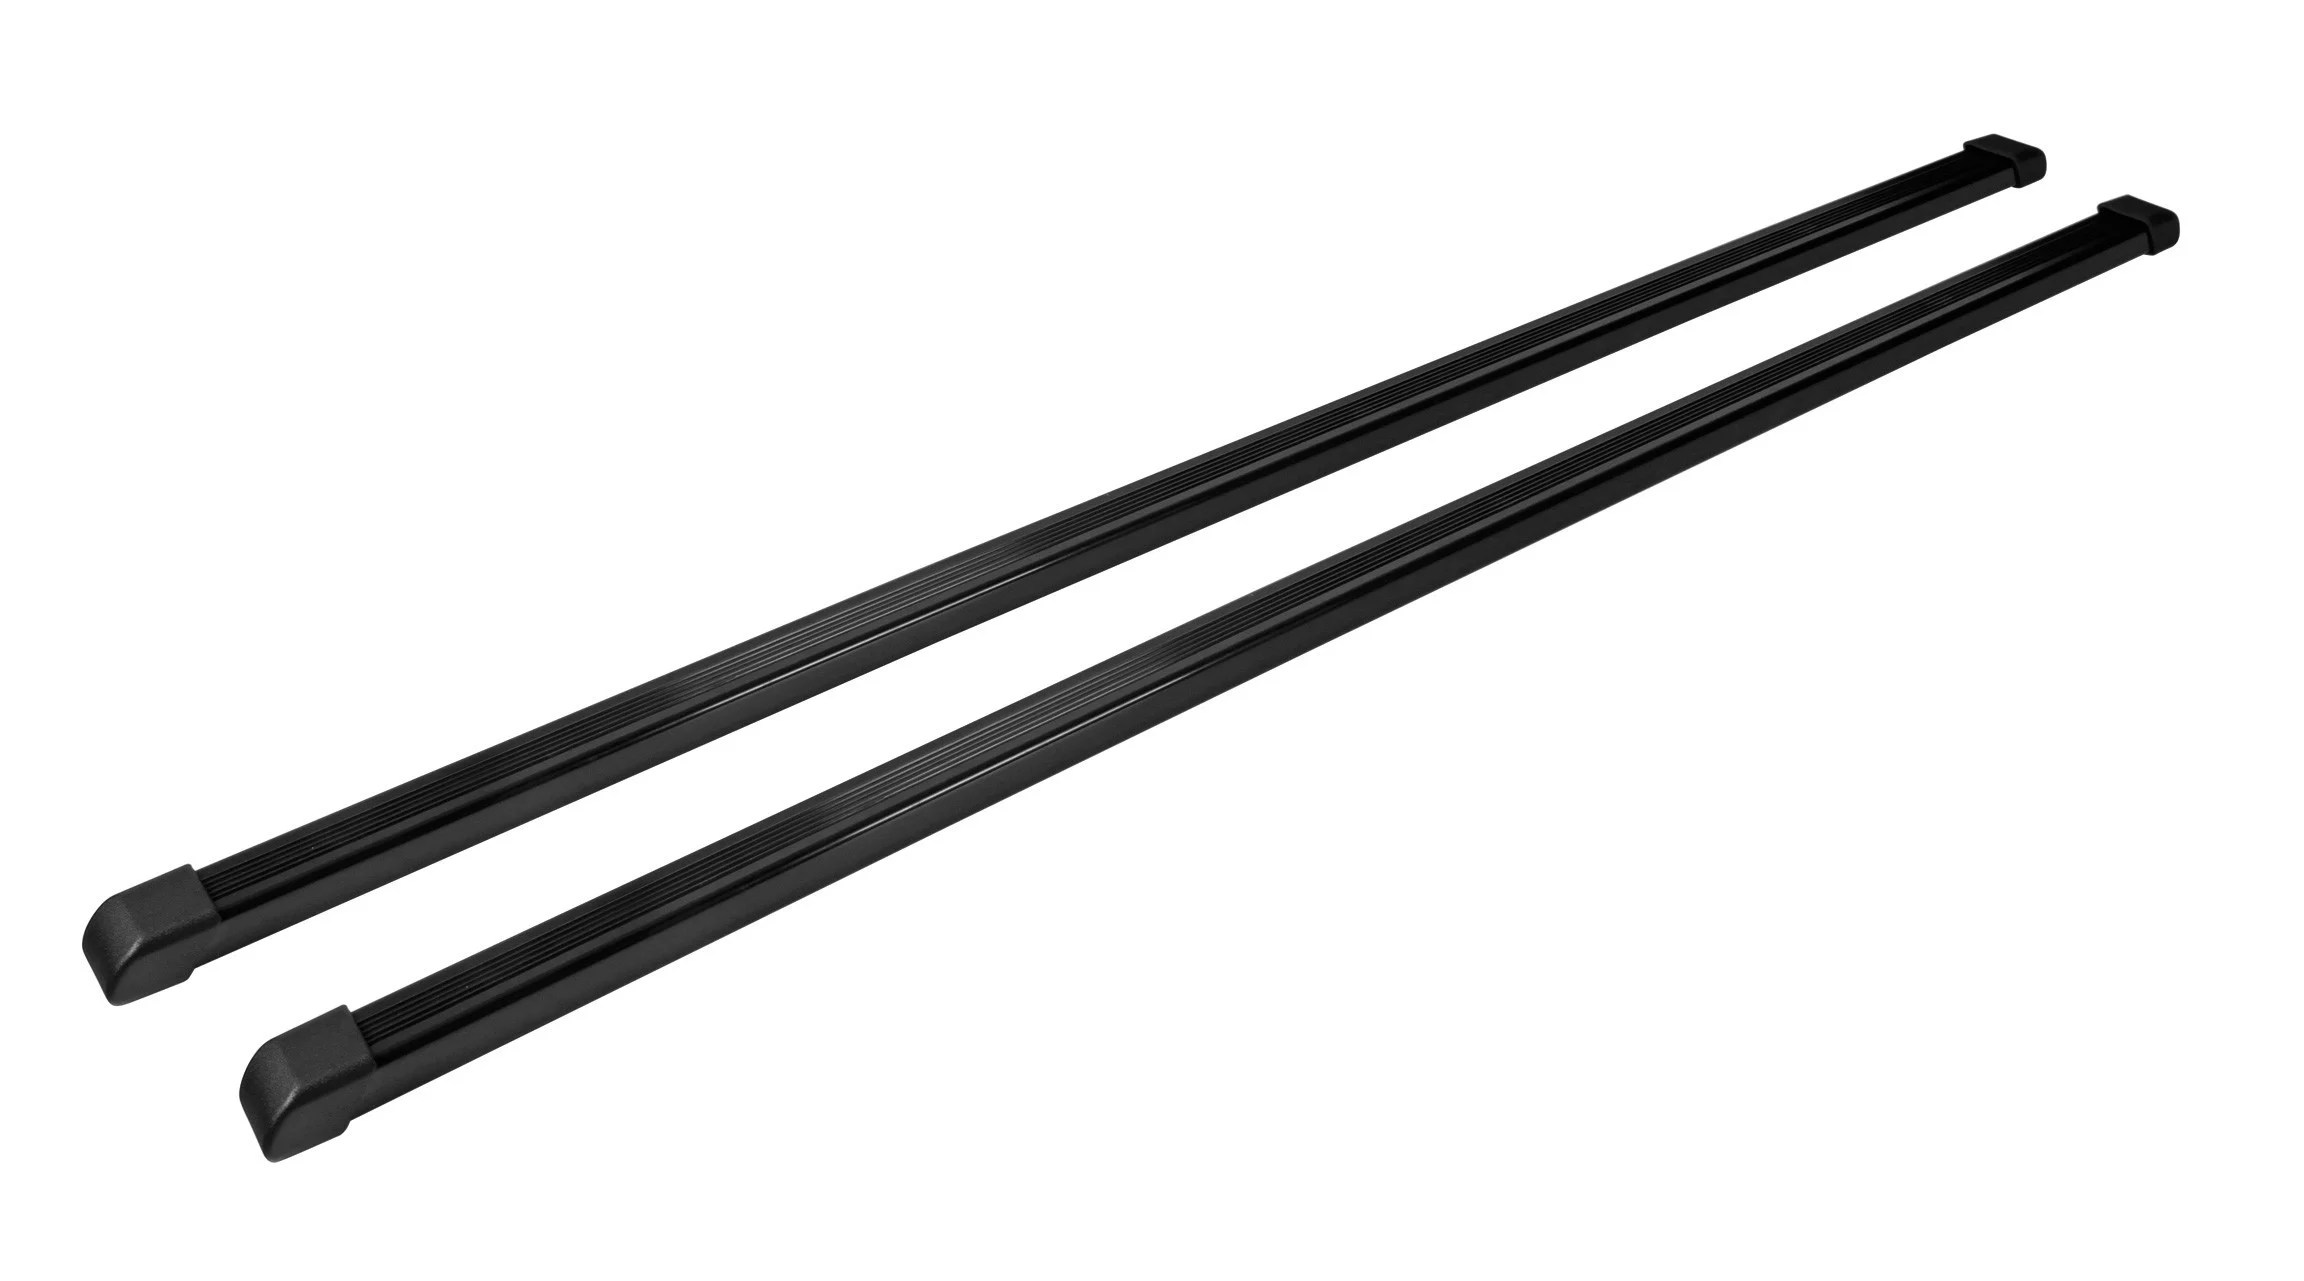 Lockable Nordrive Roof Bars For Nissan Qashqai Without